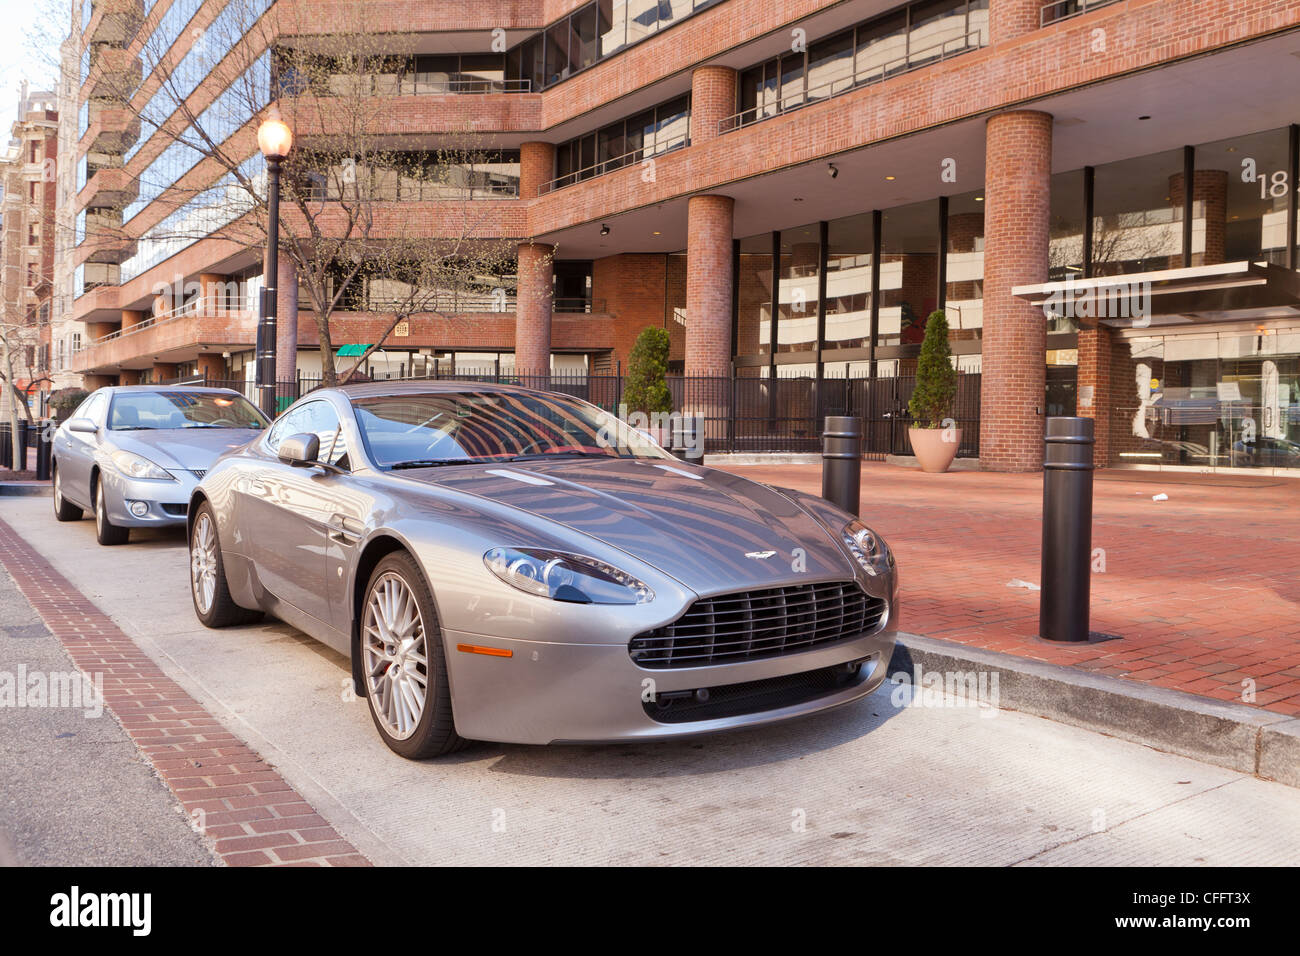 A parked Aston Martin Vantage sports car - Stock Image